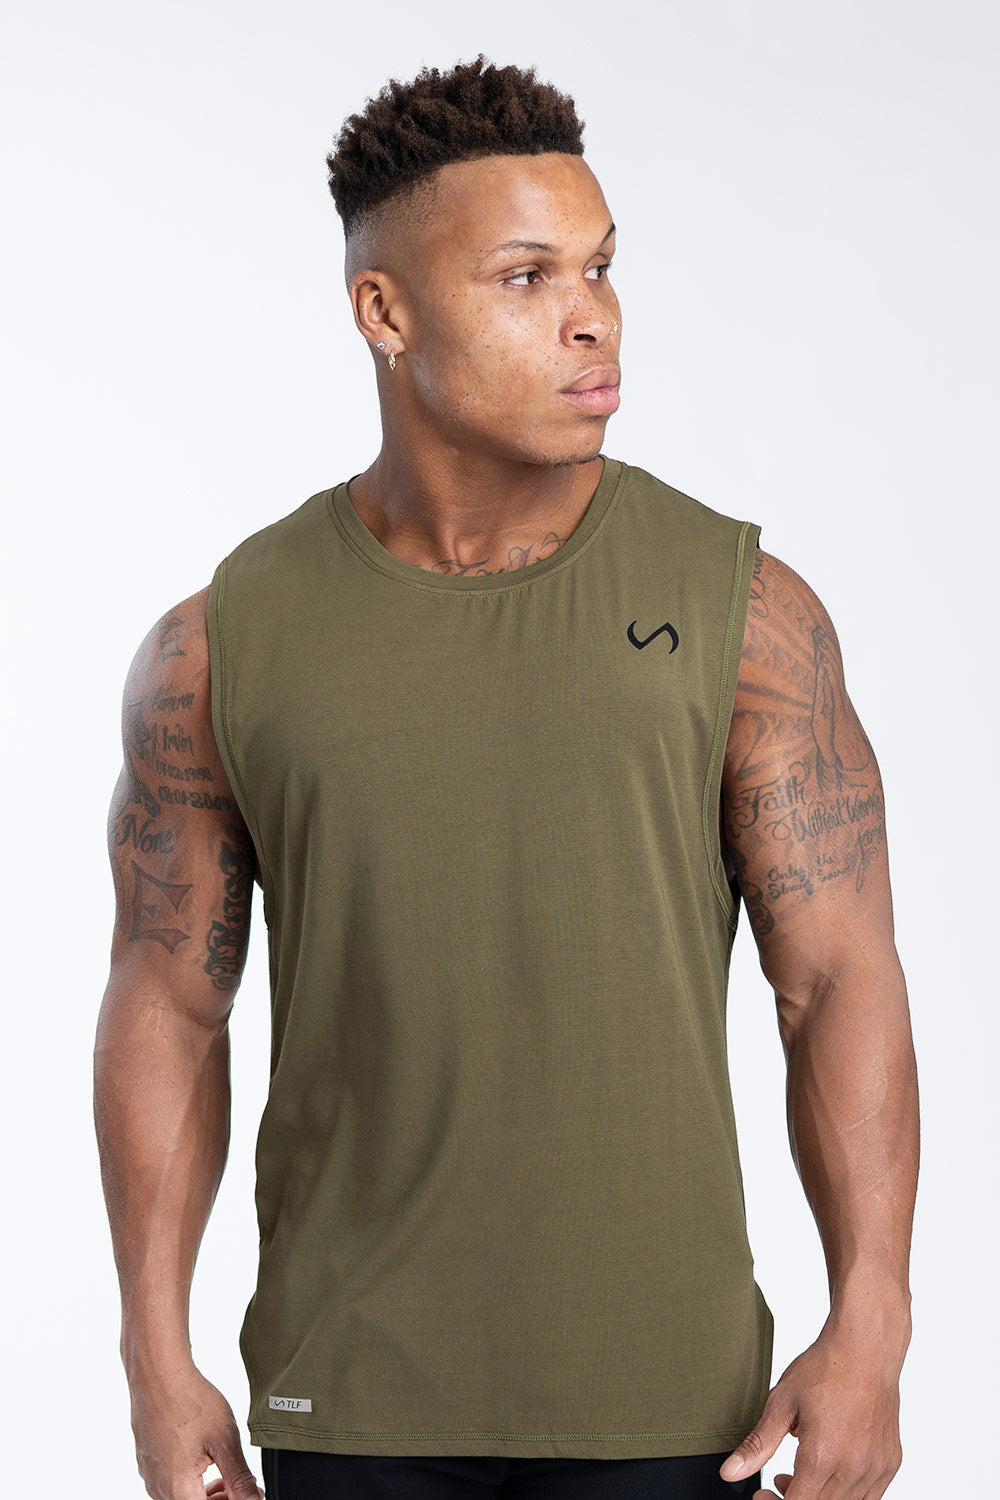 TLF Racer Tank - Tanks & Sleeveless - TLF Apparel | Take Life Further